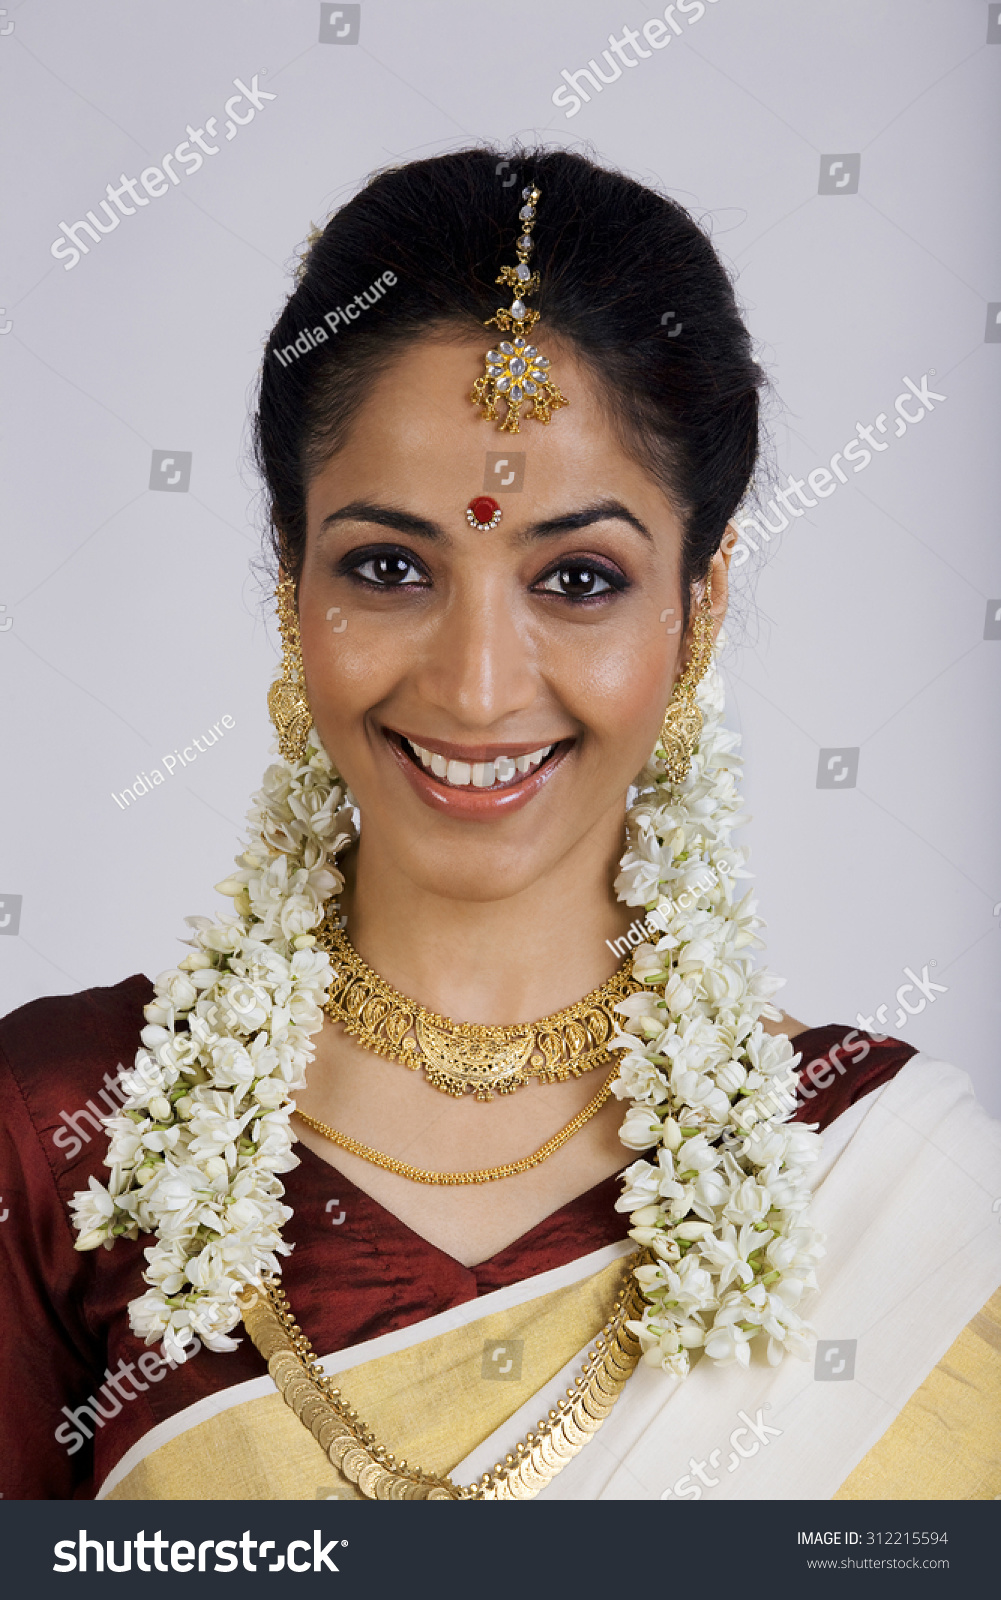 south plymouth hindu single women Looking for single women over 50 in whitman interested in dating hindu single women in whitman south easton plymouth county.